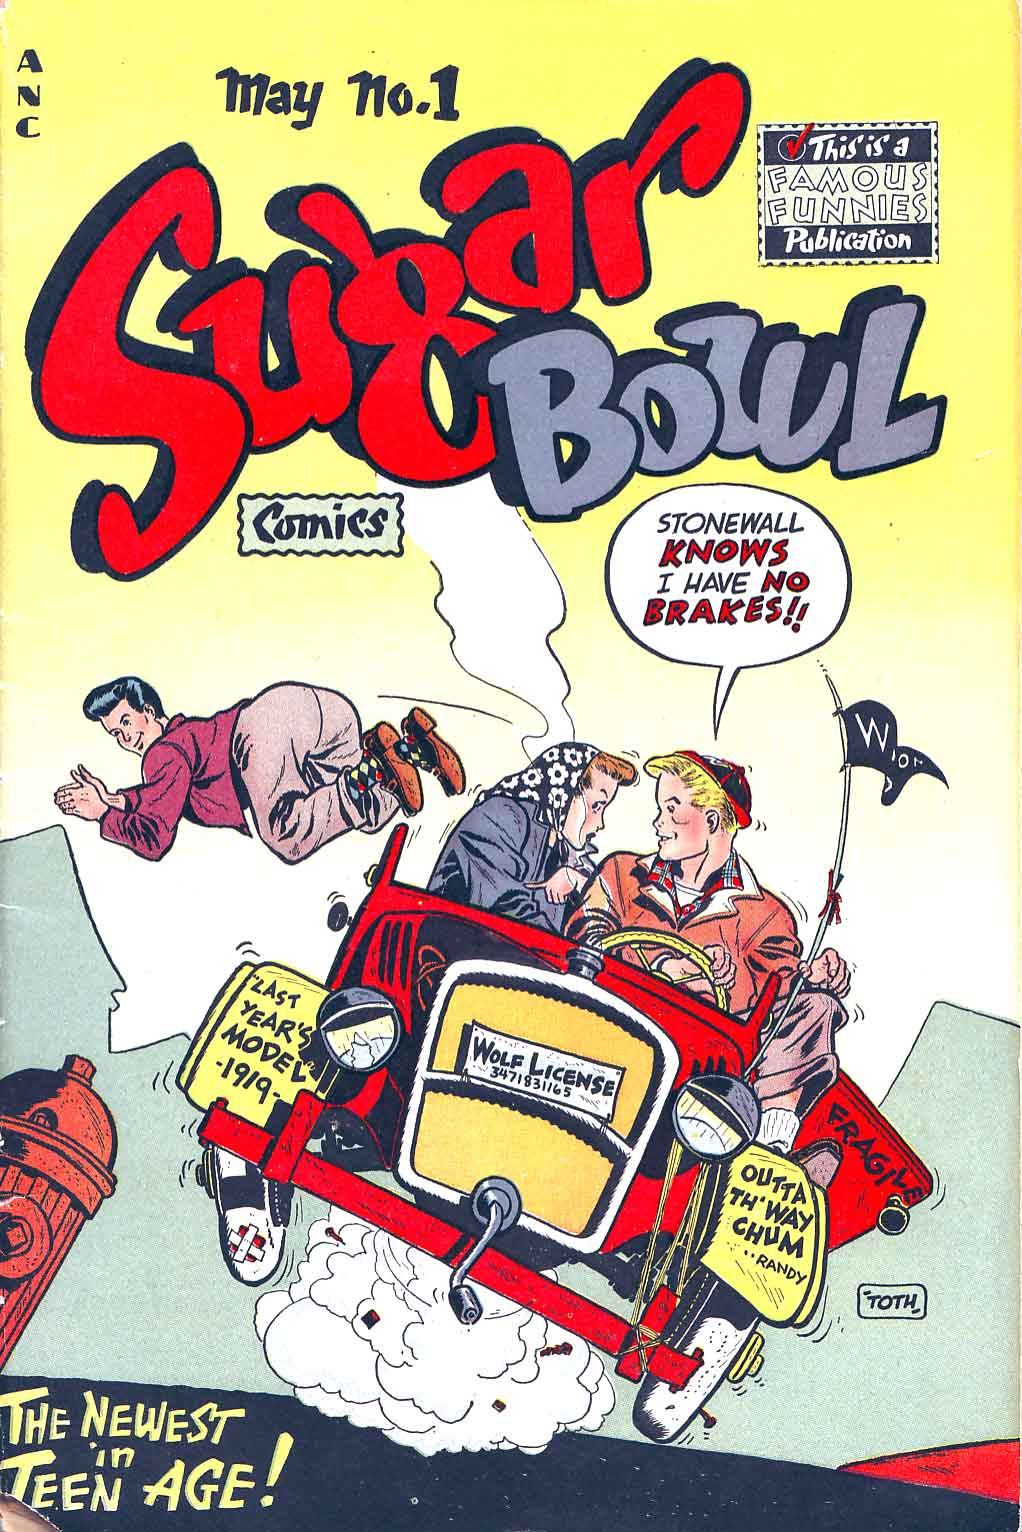 Sugar Bowl v1 #1 golden age comic book cover art by Alex Toth